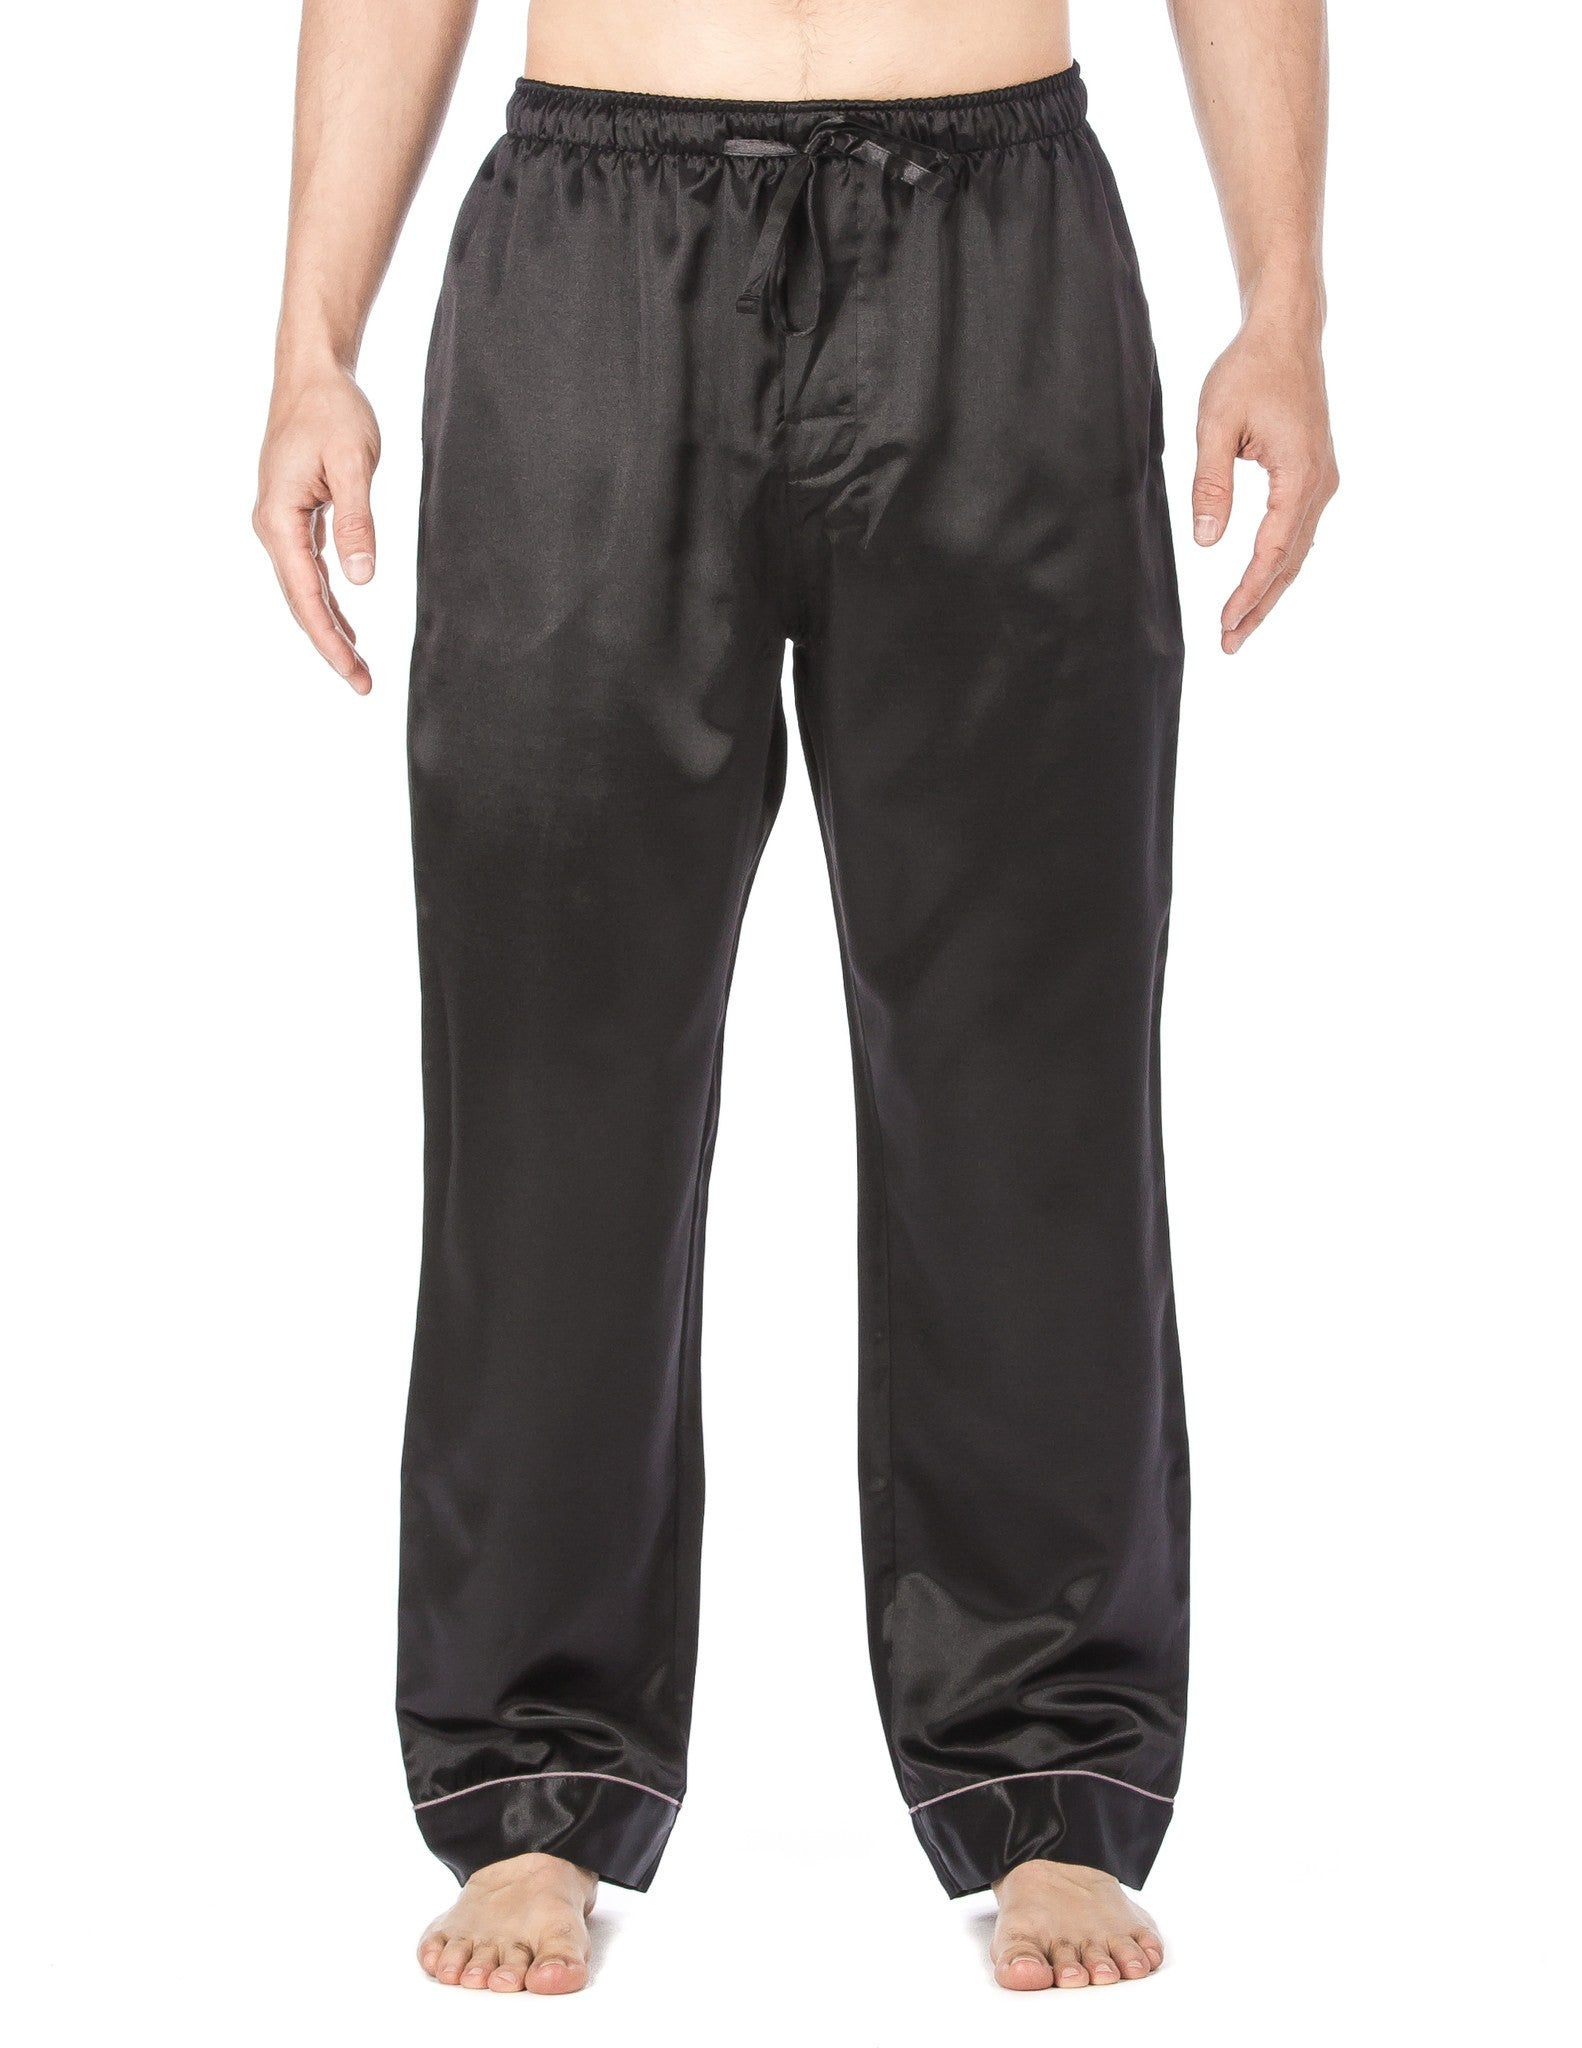 Men's Premium Satin Sleep/Lounge Pants